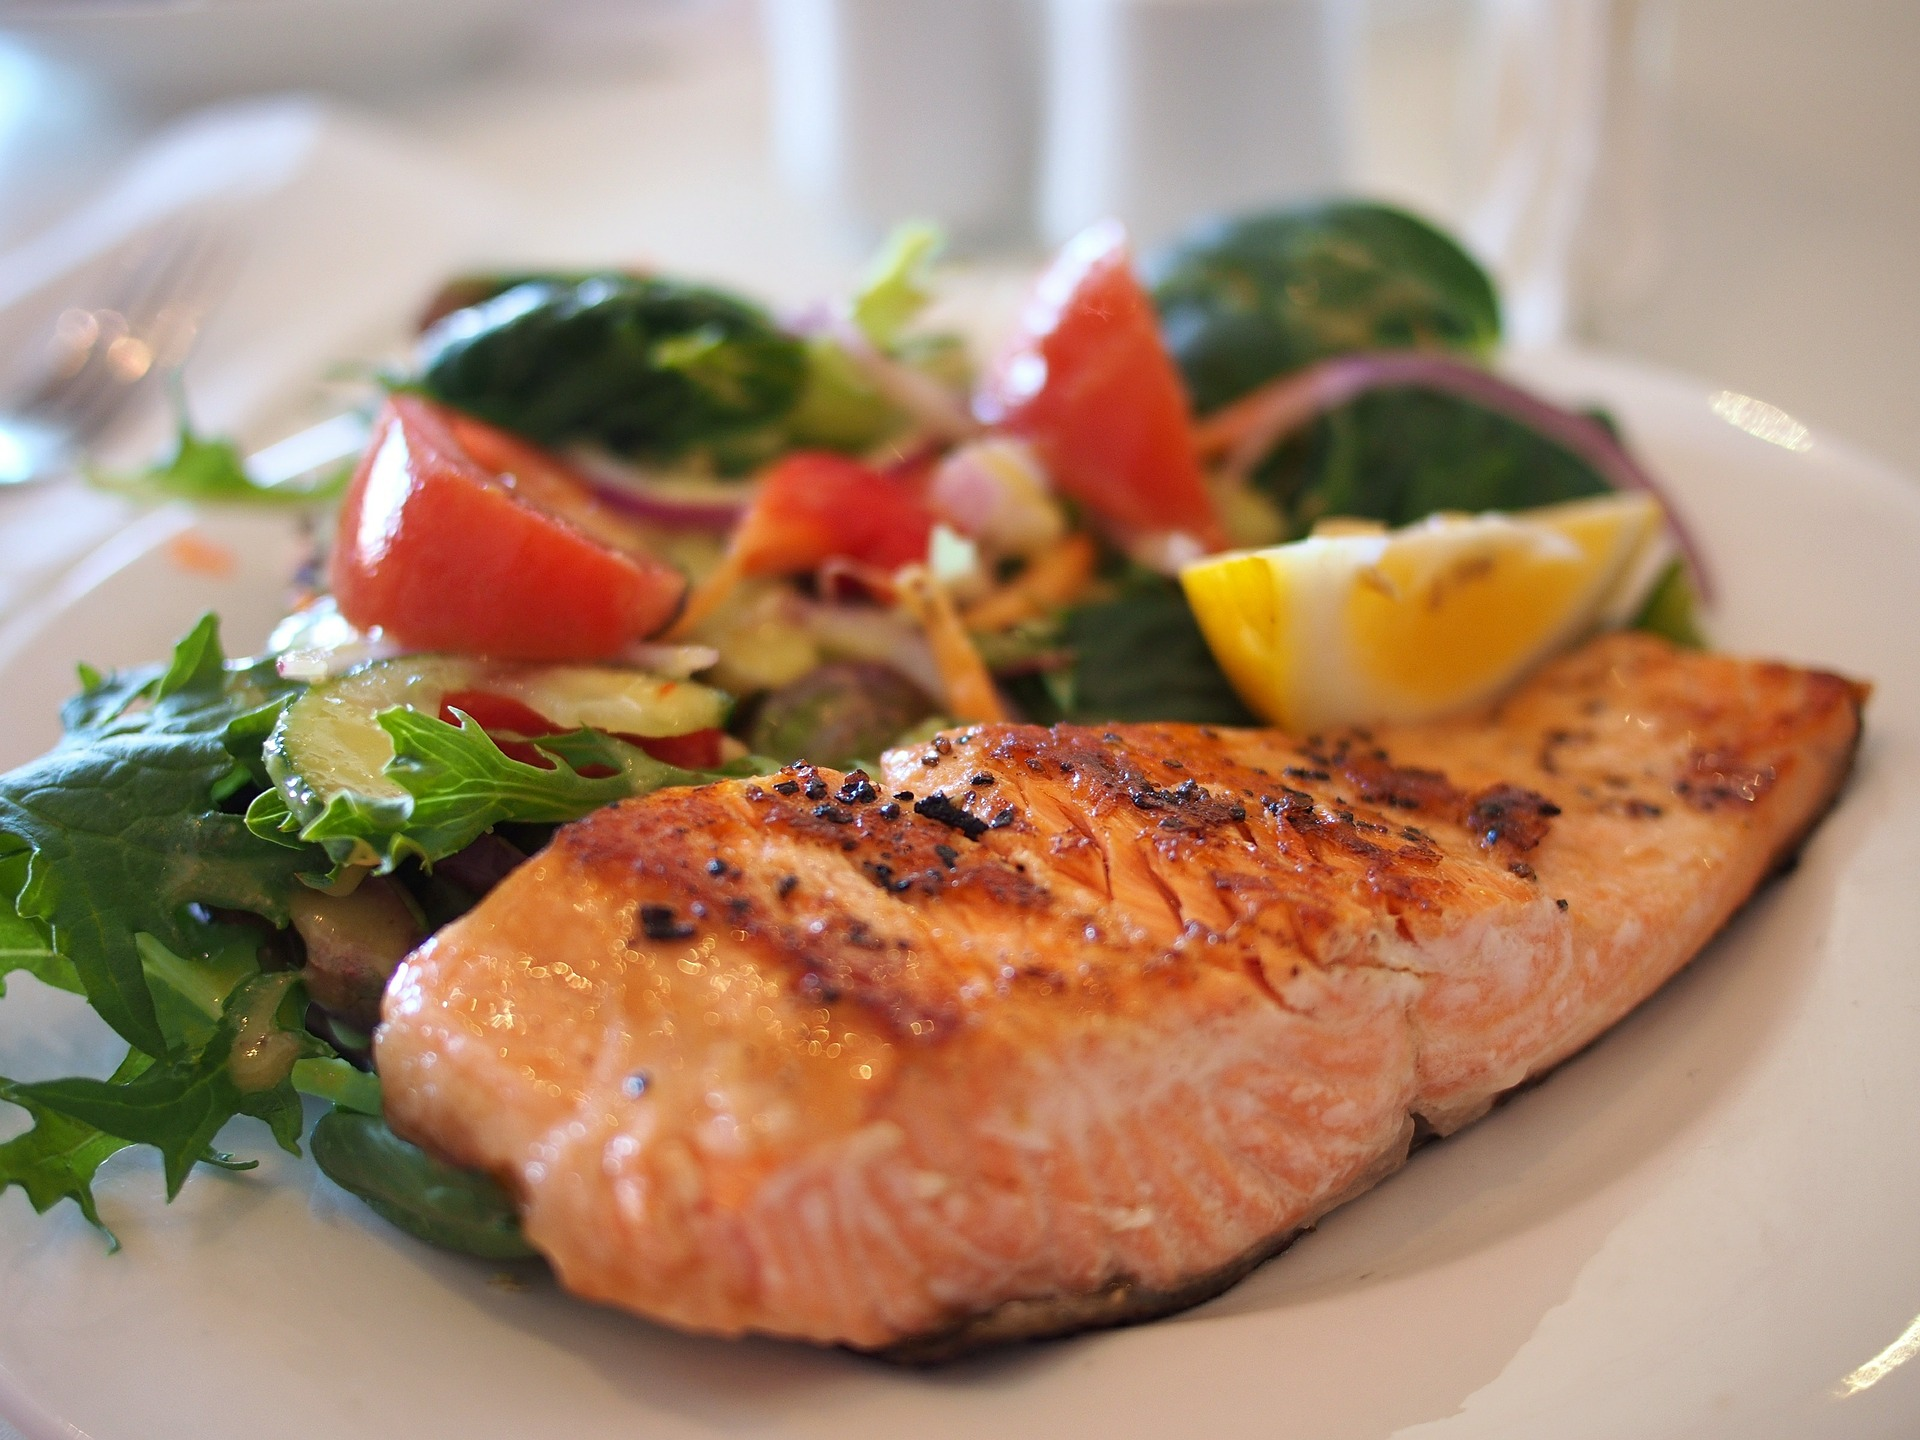 picture of salmon on plate with veggies